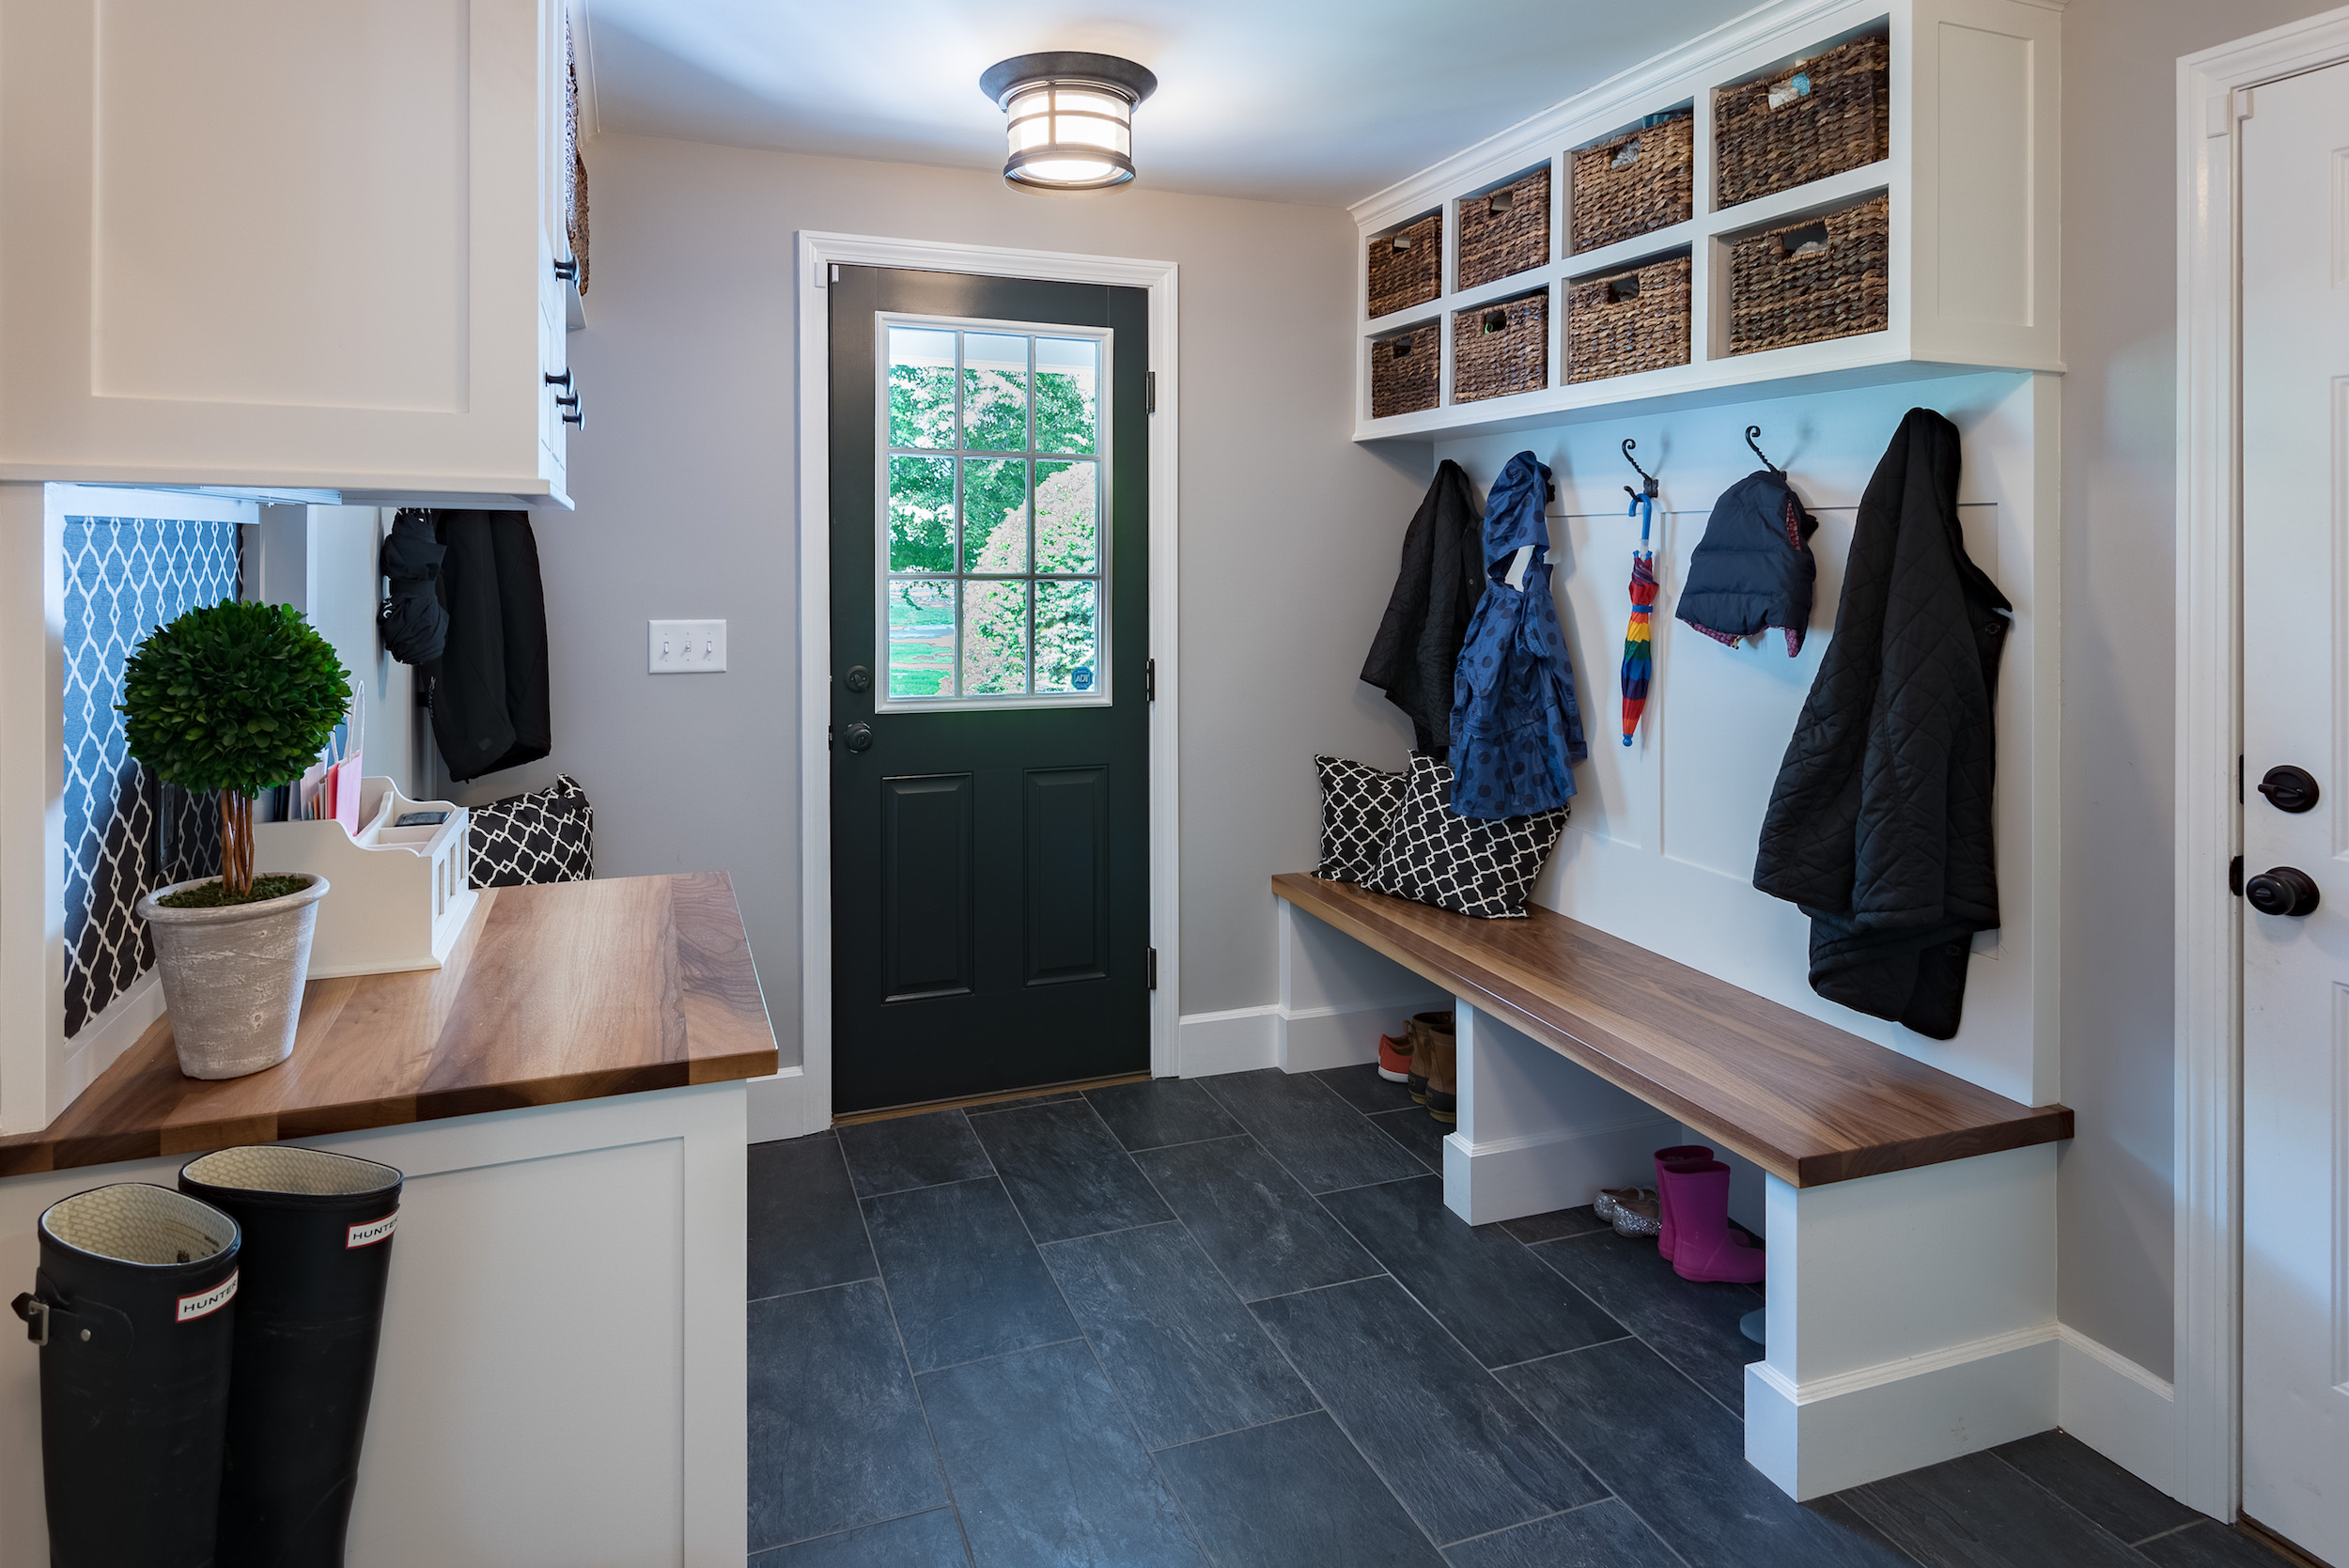 2-KitchenVisions-Mudroom-Landing-Space-Wayland.jpg